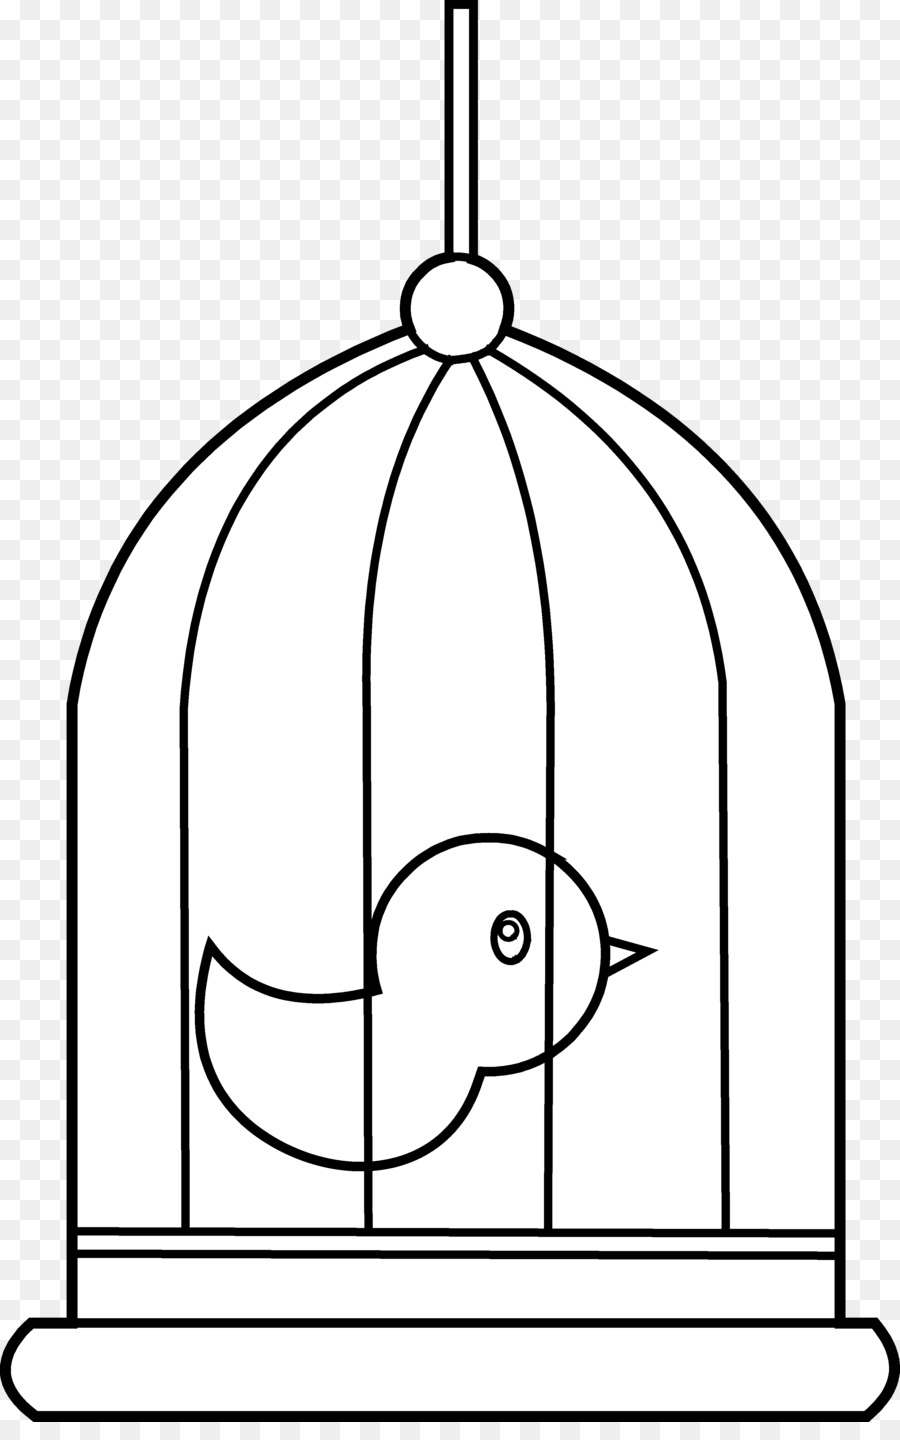 Bird drawing parrot transparent. Cage clipart line